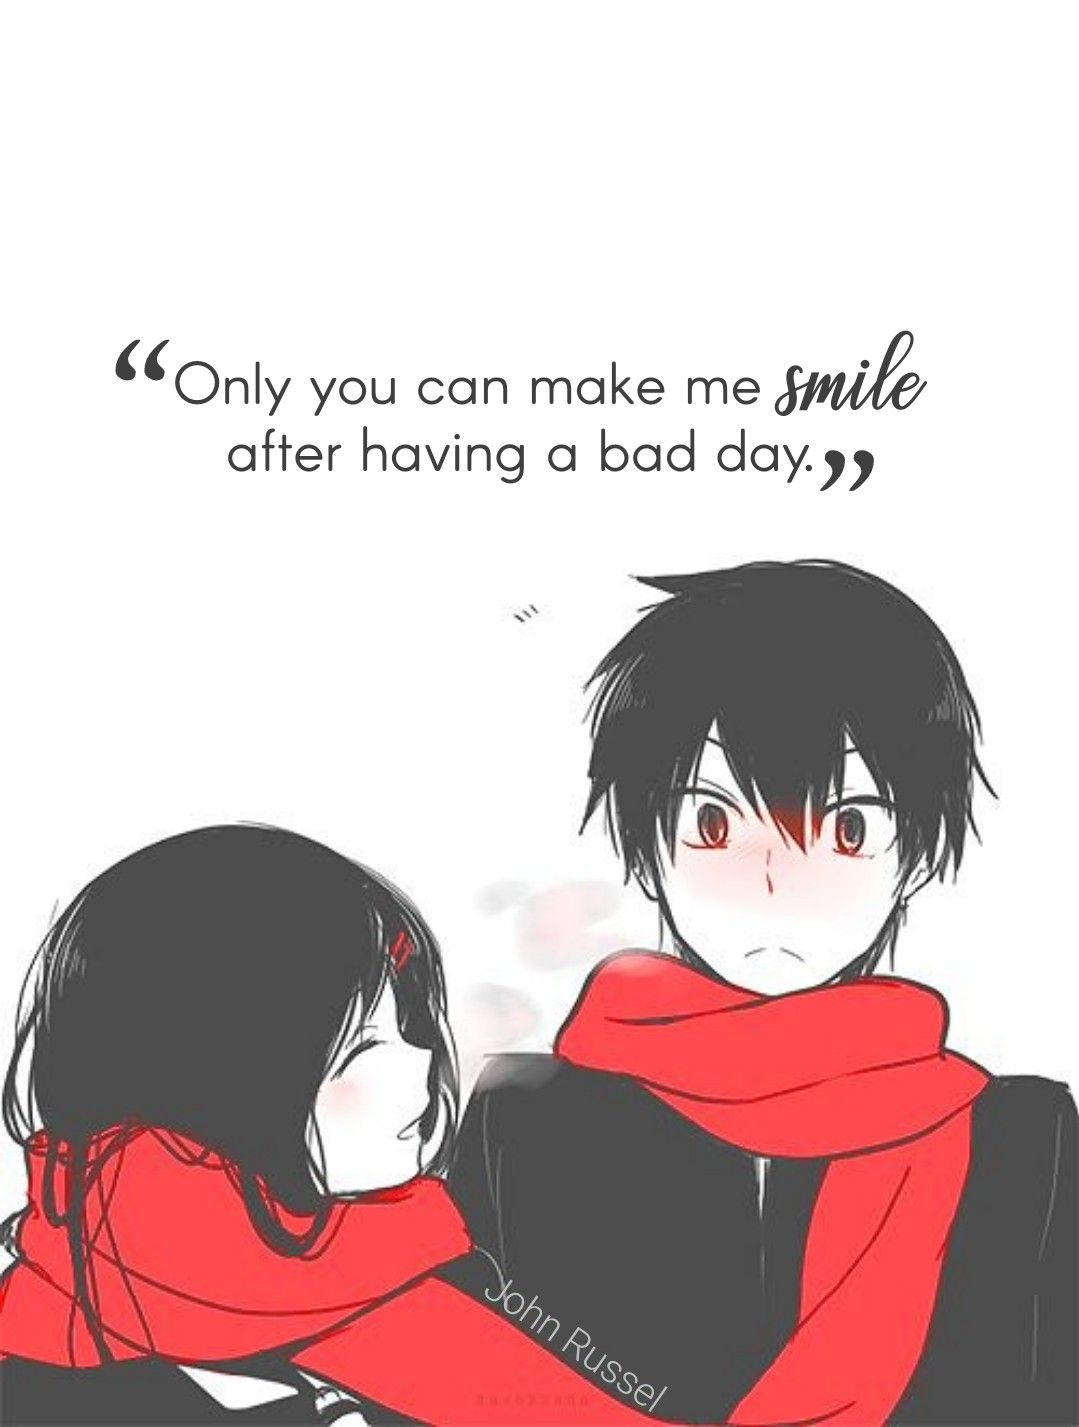 Pin On Anime Quotes 6 One Background